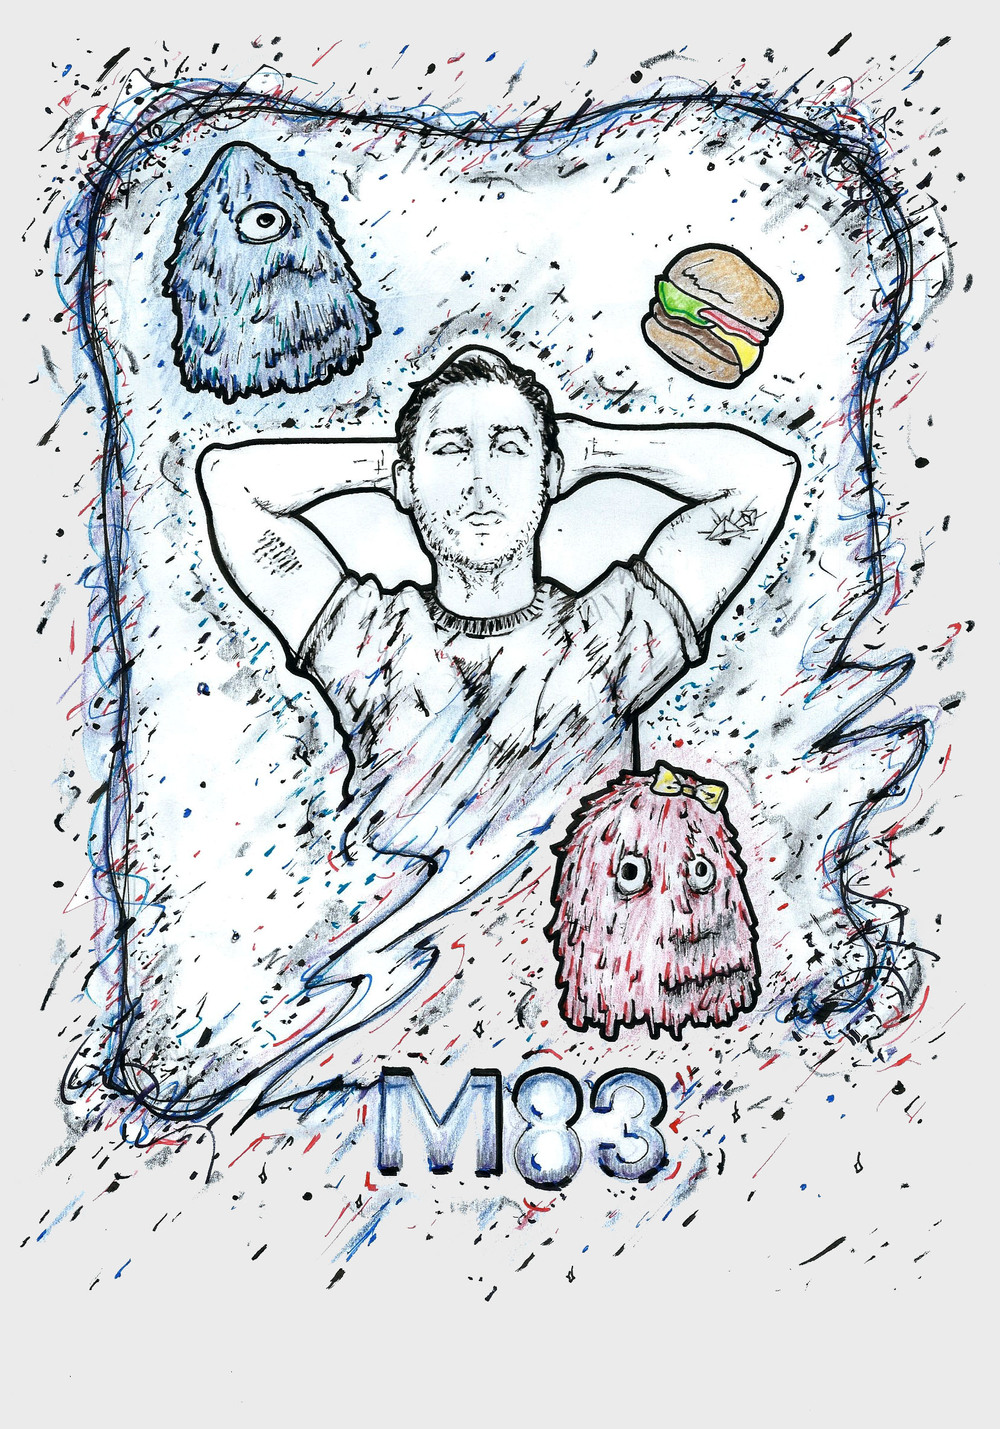 M83-illustration01.jpg